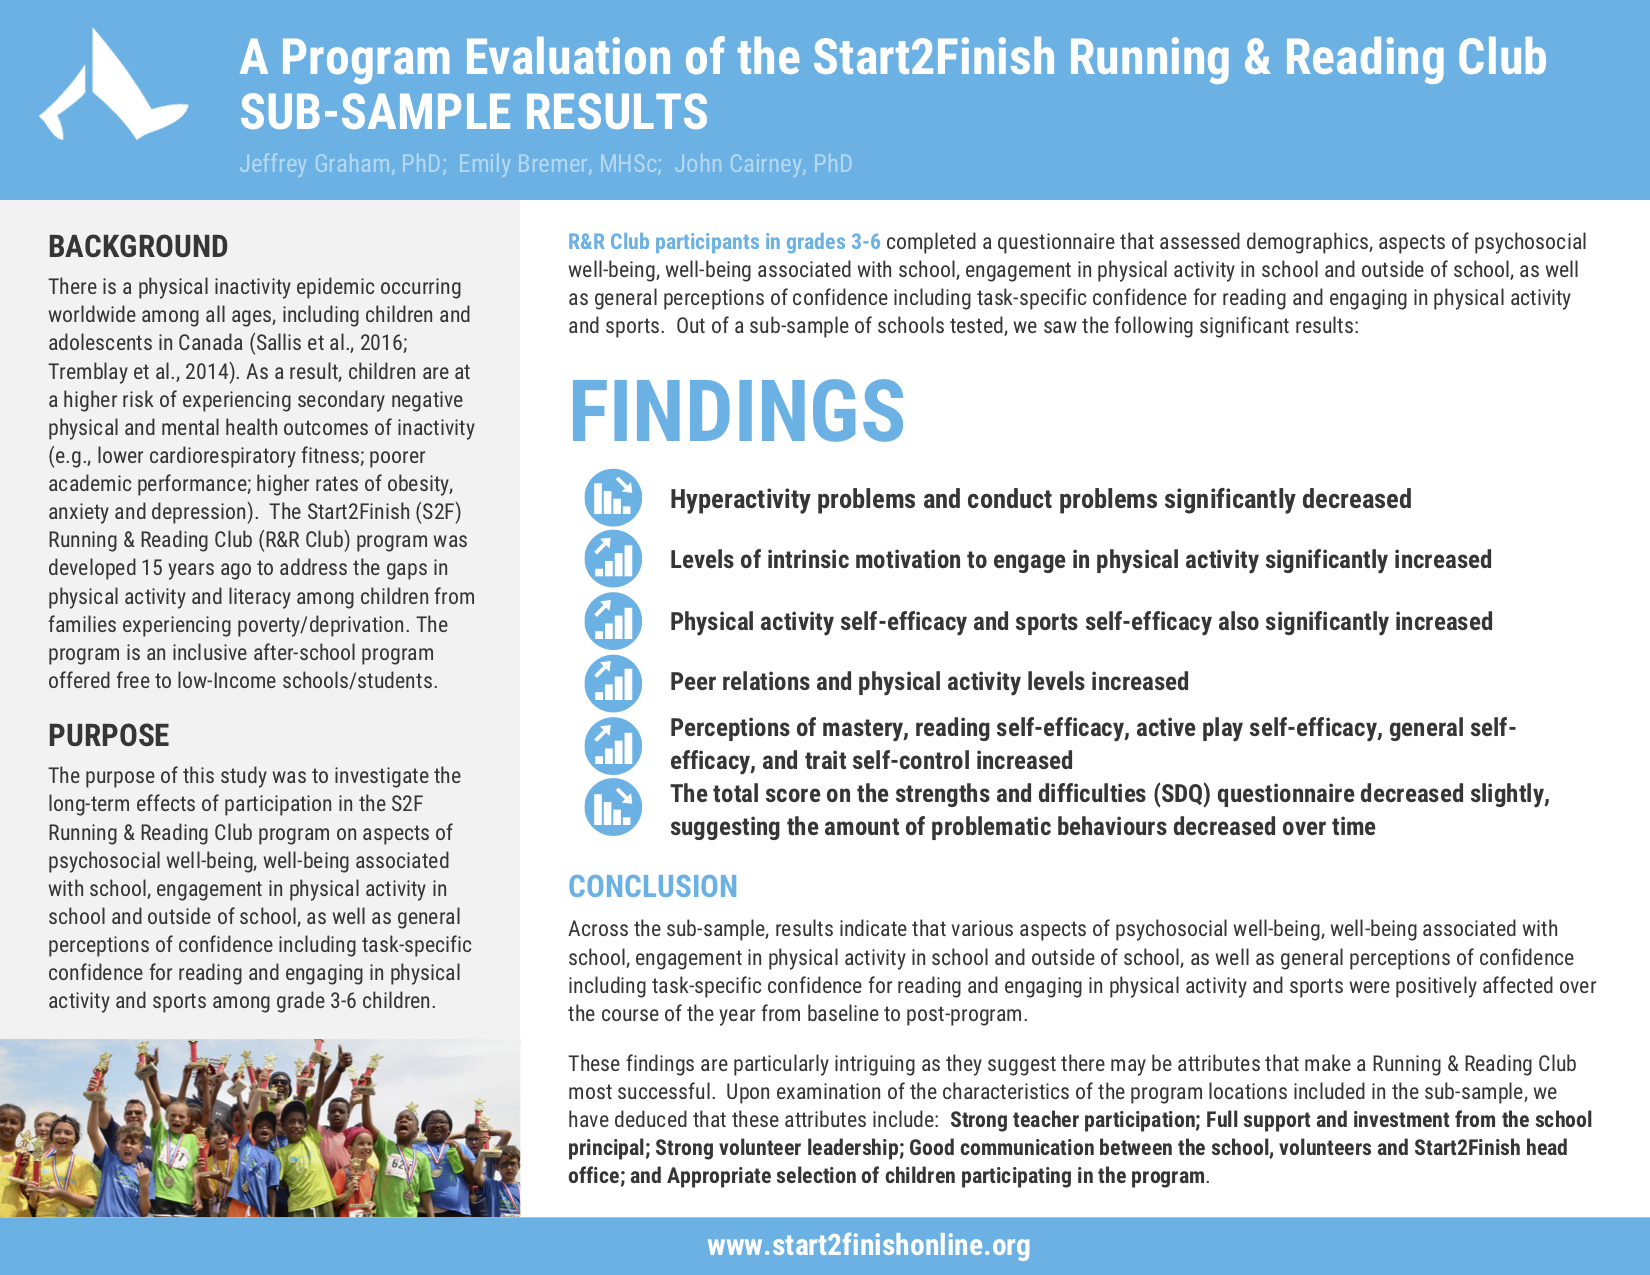 S2F Running & Reading Club Program Evaluation INFOGRAPHIC 2019.jpg